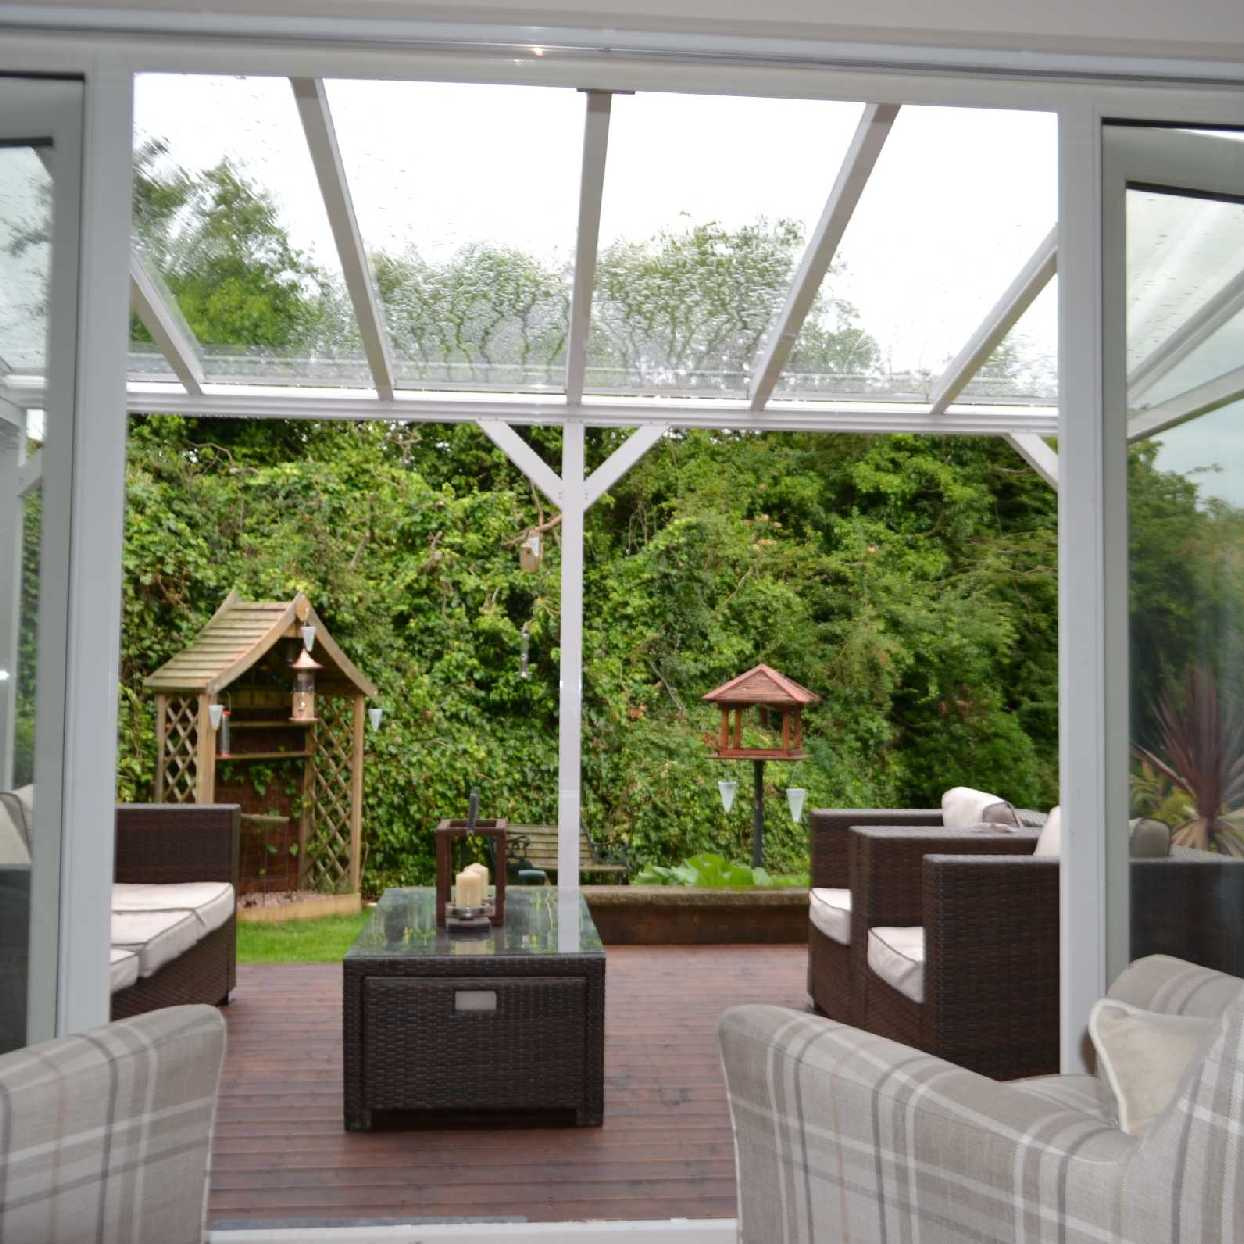 Great selection of Omega Smart White Lean-To Canopy UNGLAZED for 6mm Glazing - 2.8m (W) x 2.5m (P), (2) Supporting Posts